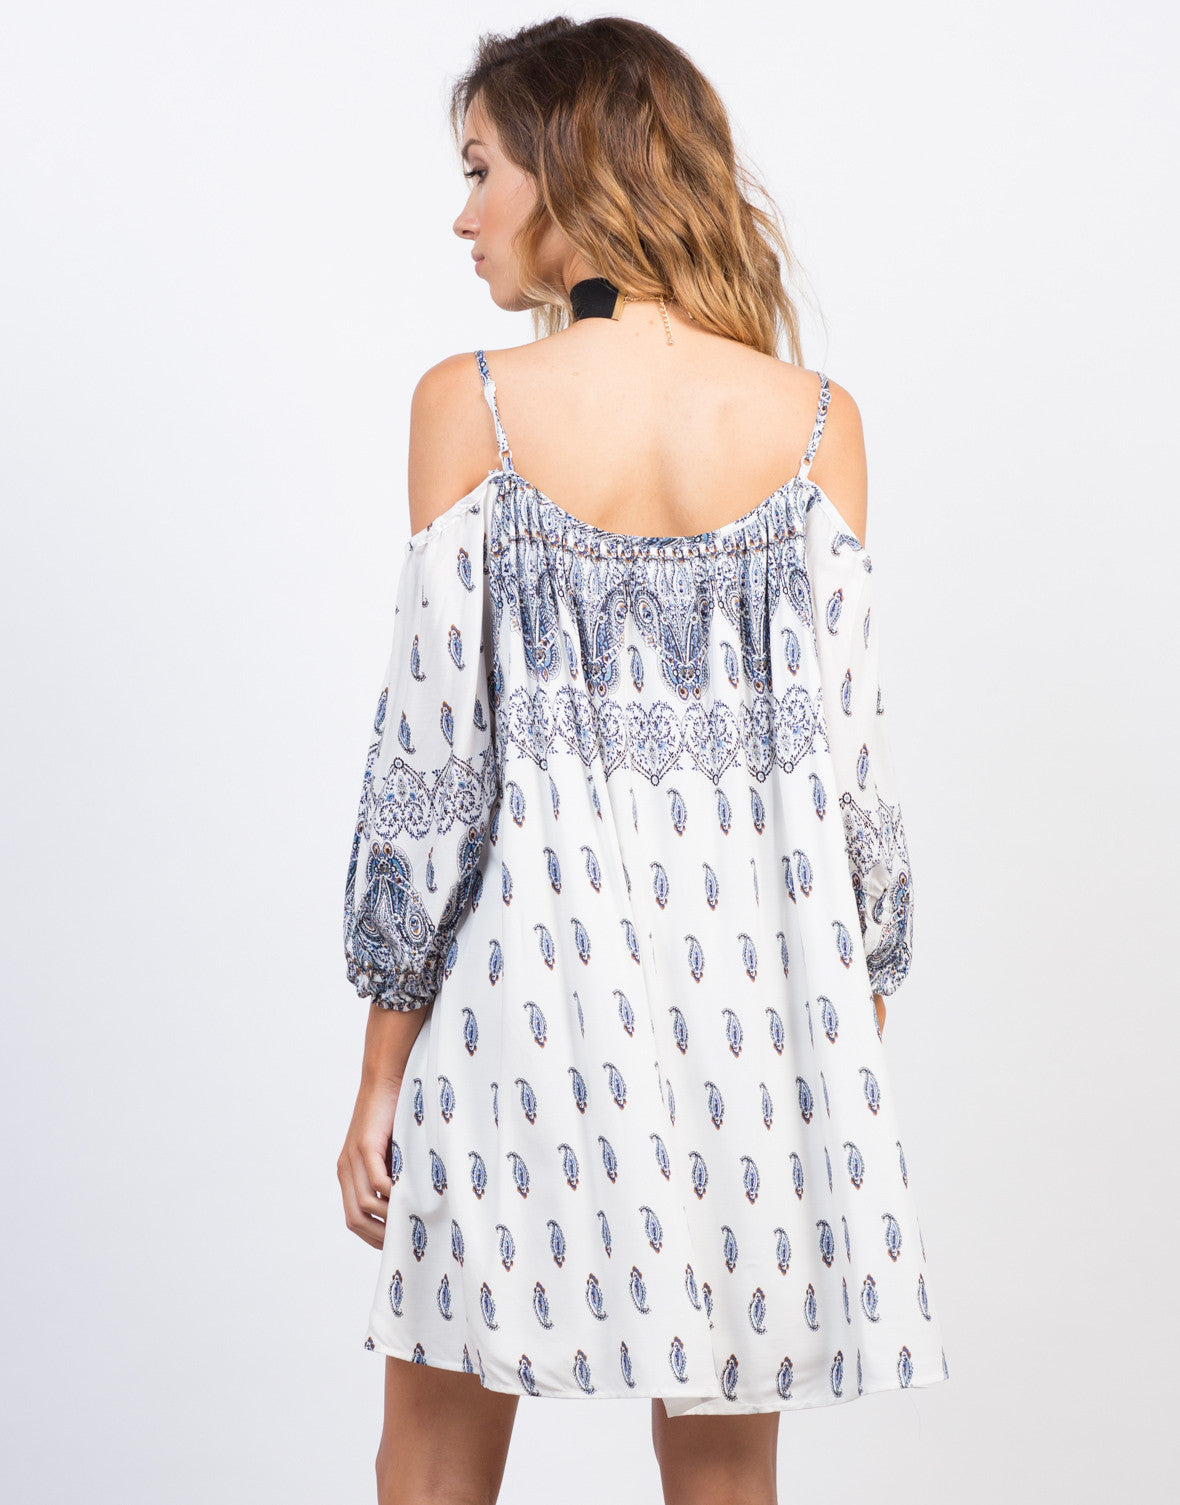 Back View of Flowy Paisley Dress